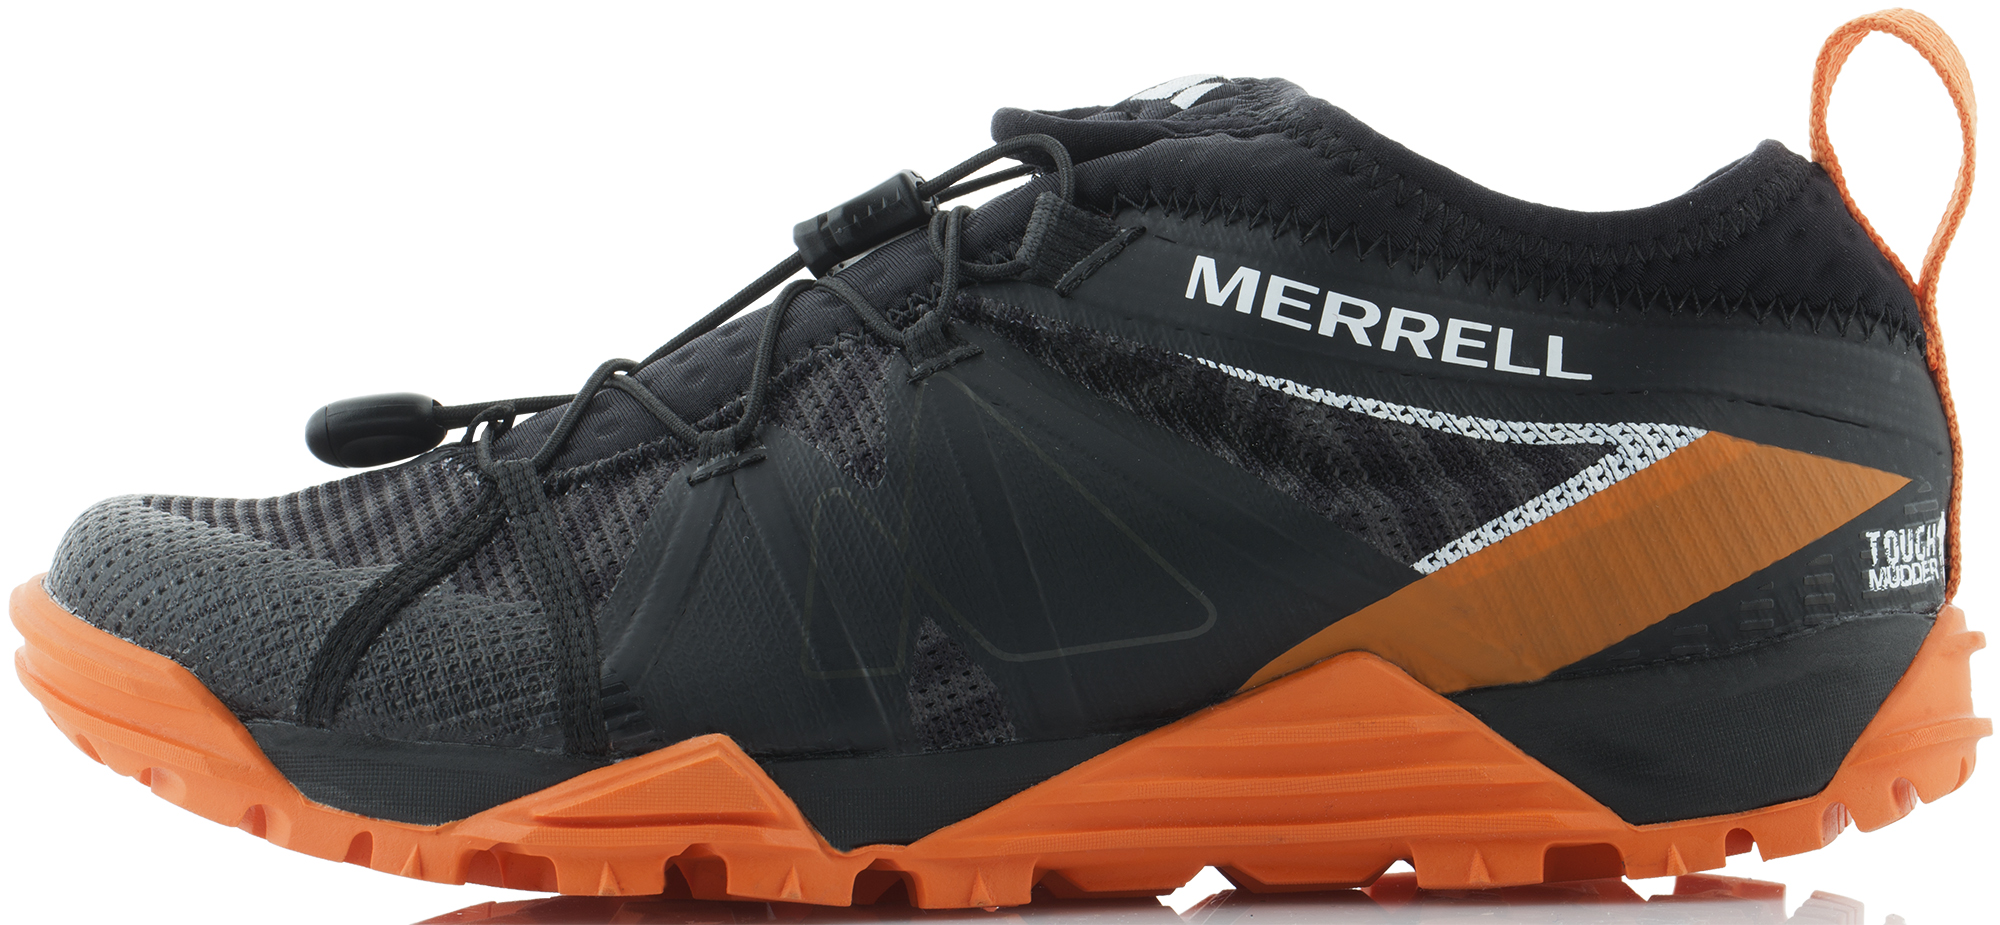 Merrell Кроссовки женские Merrell Avalaunch Tough Mudder